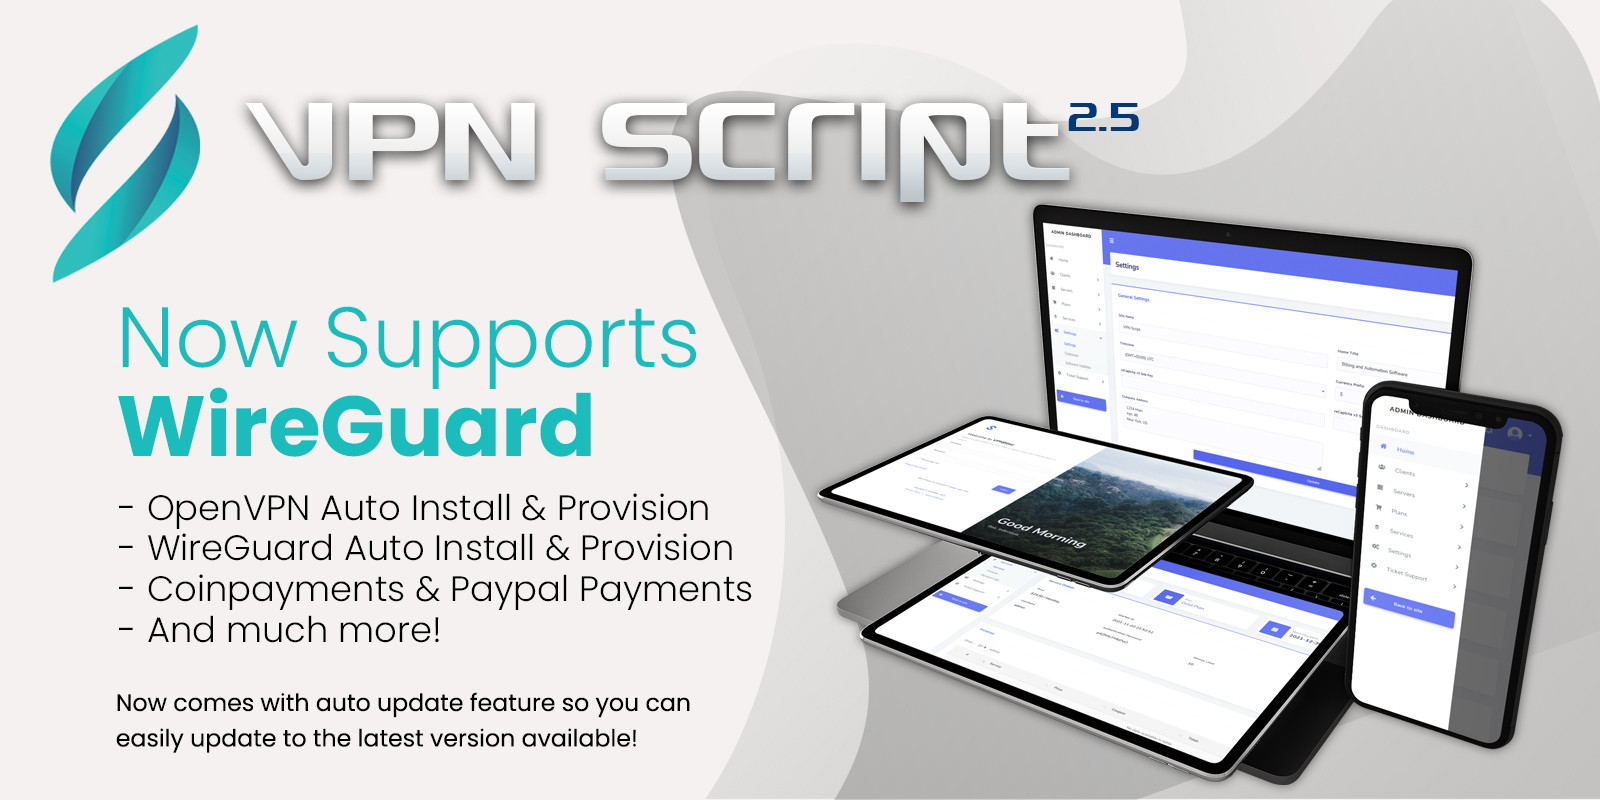 VPN Script - Advanced VPN Management Script